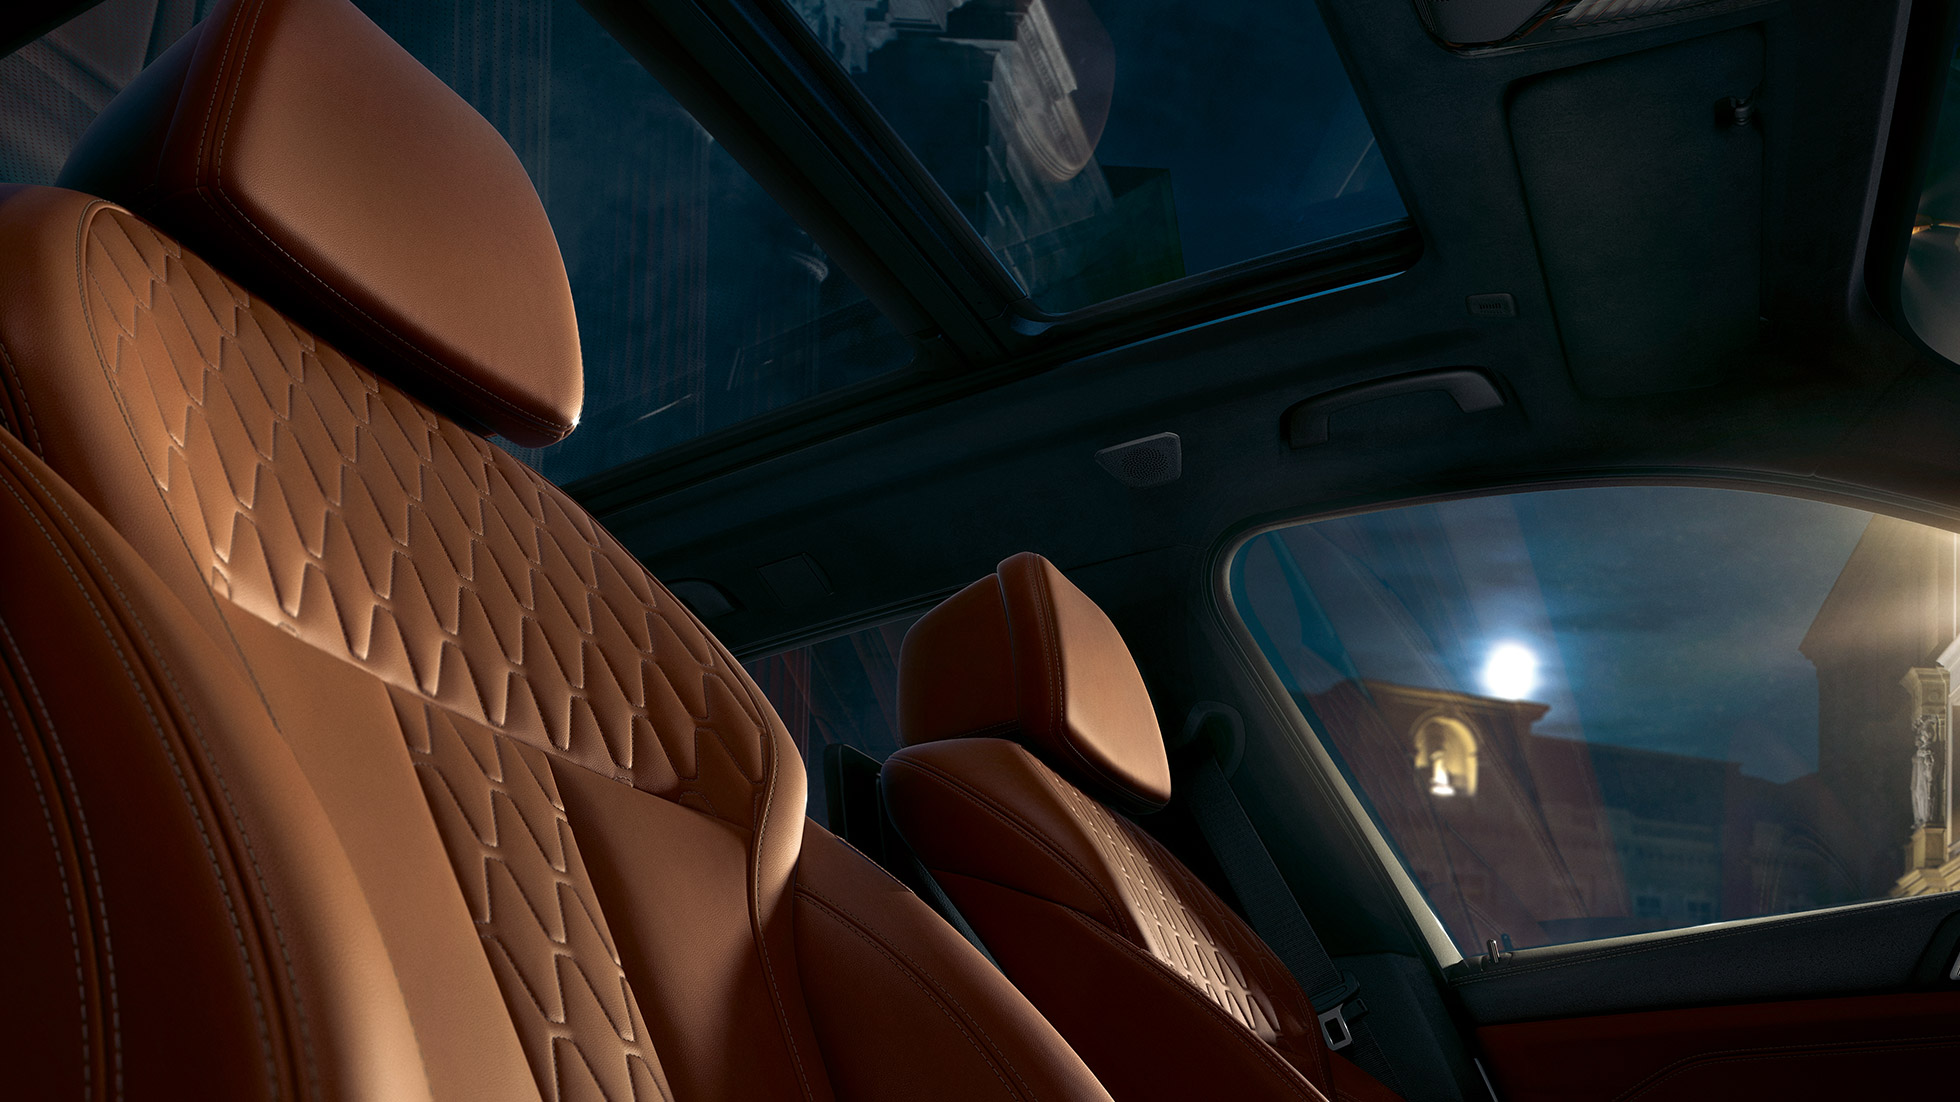 Leather seats BMW X5 G05 2018 interior